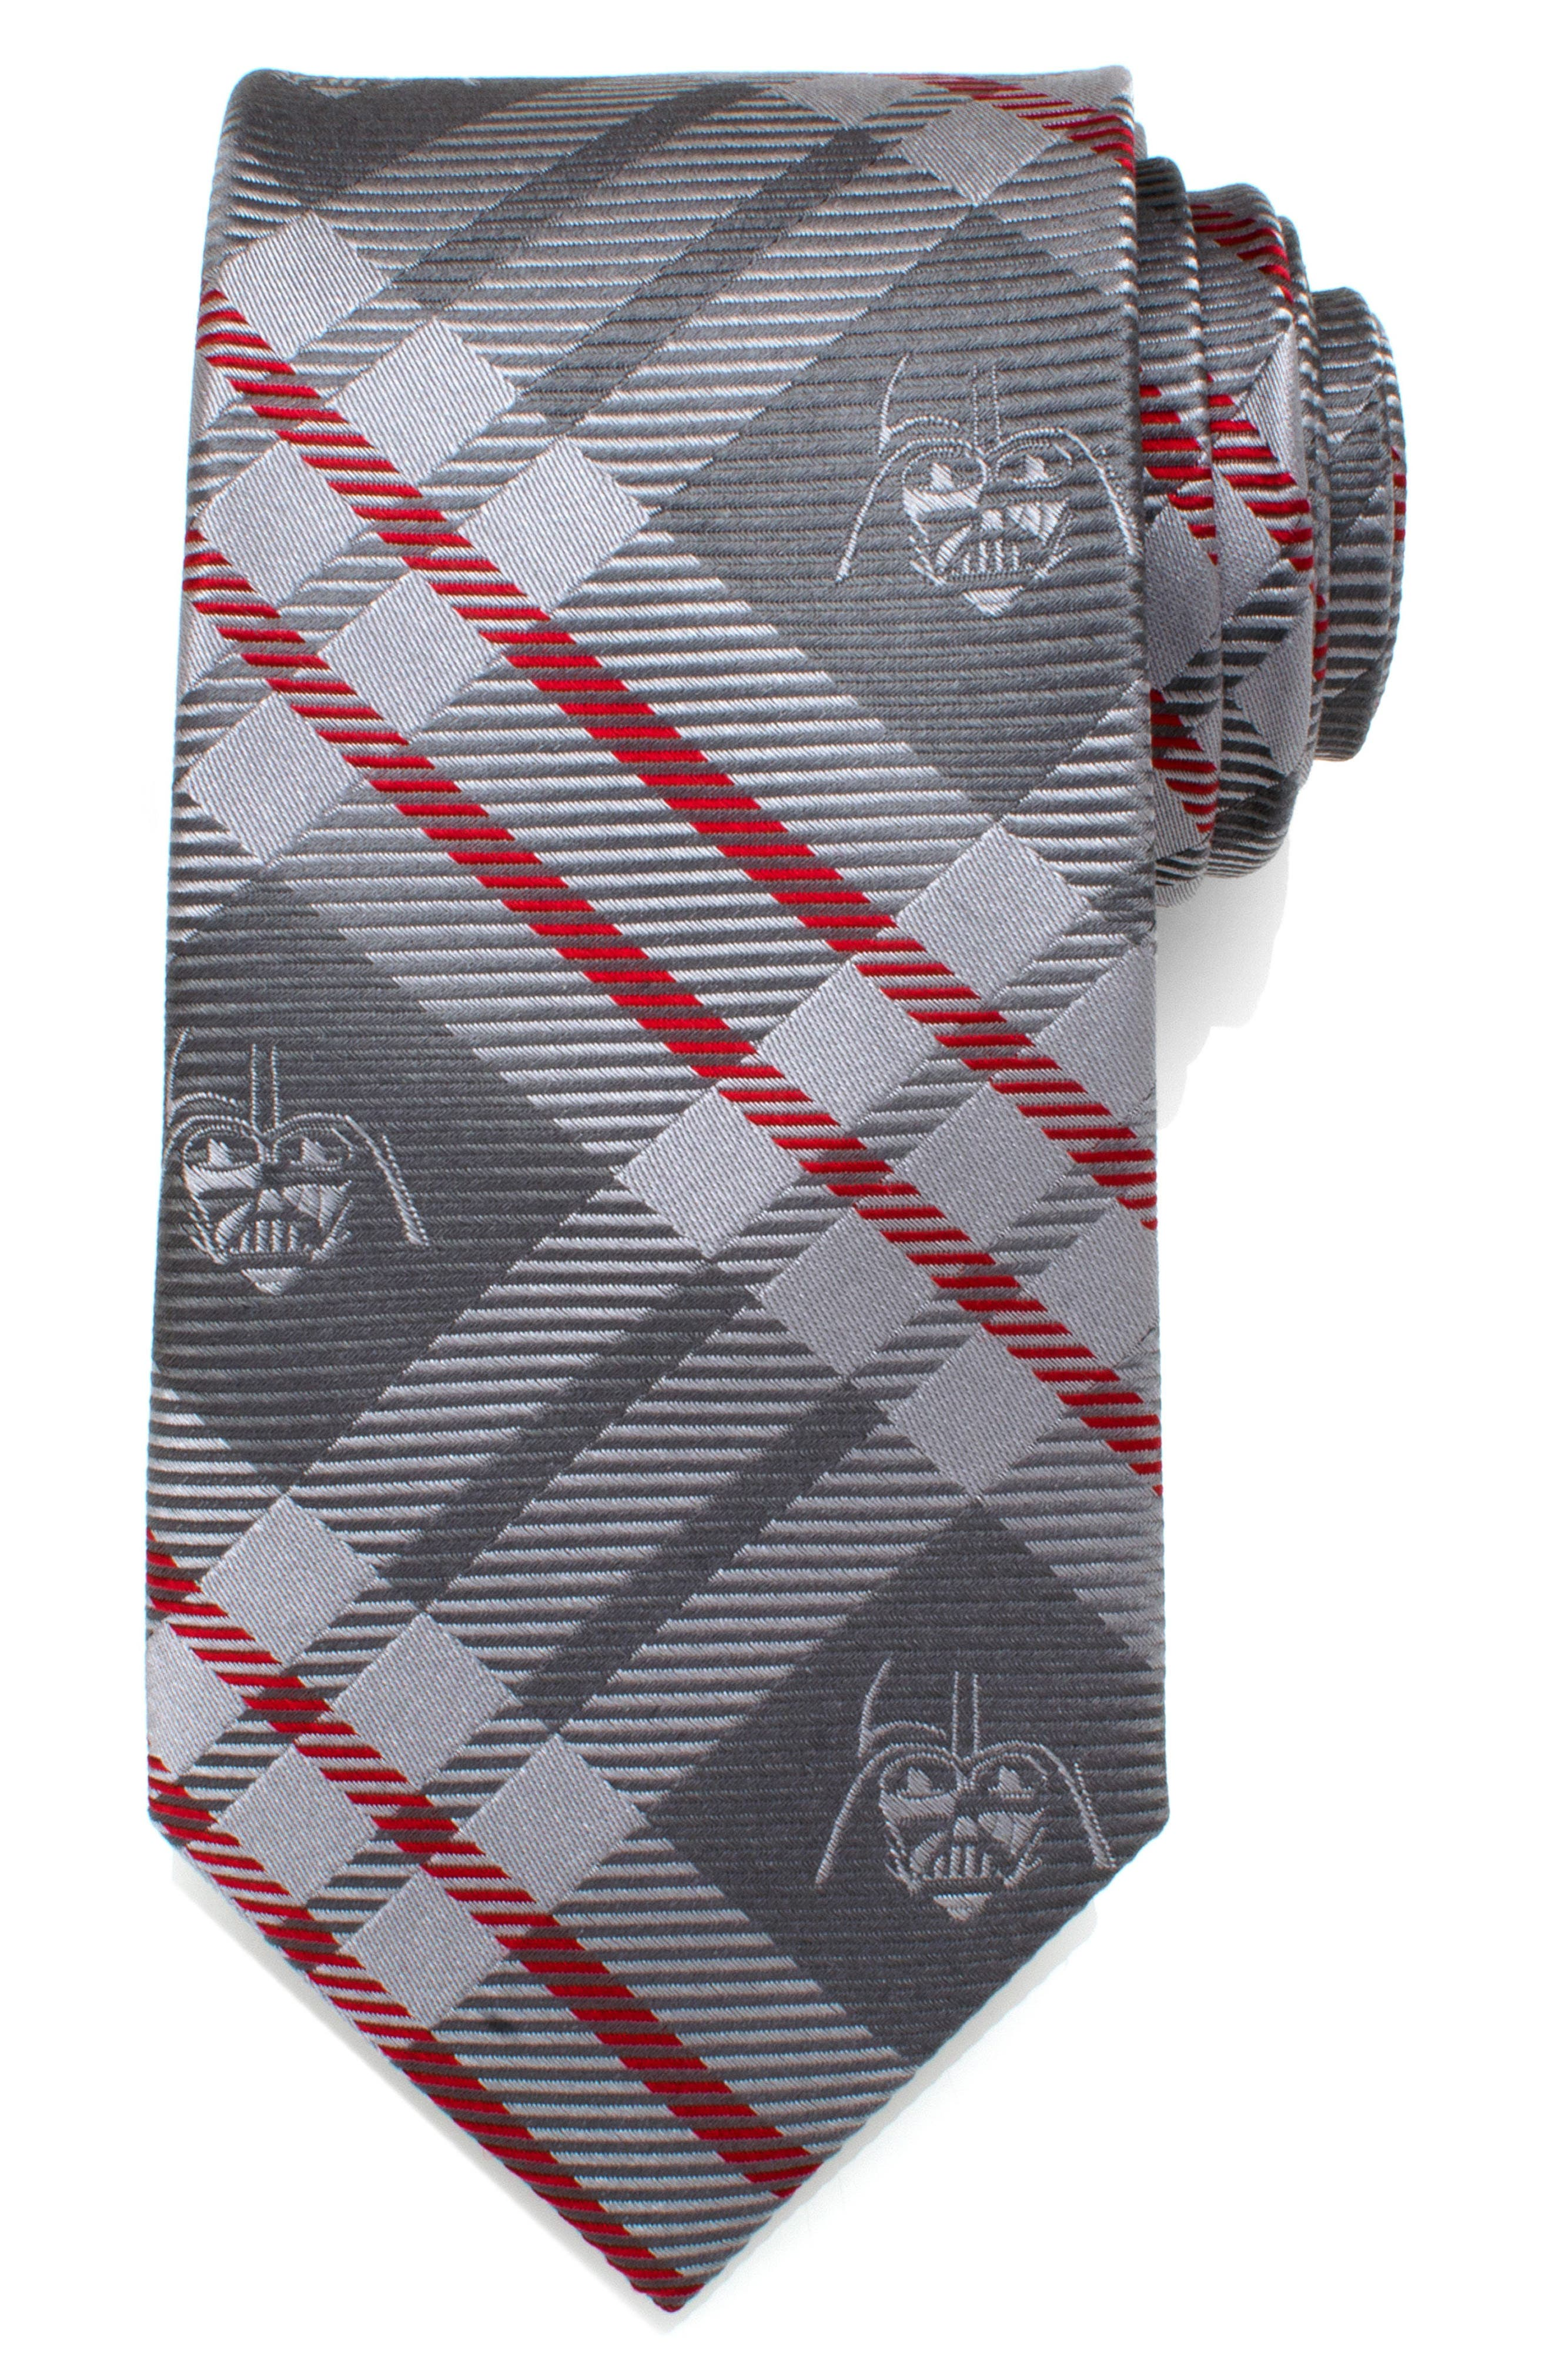 Star Wars<sup>™</sup> Darth Vader Plaid Silk Tie,                         Main,                         color, GRAY